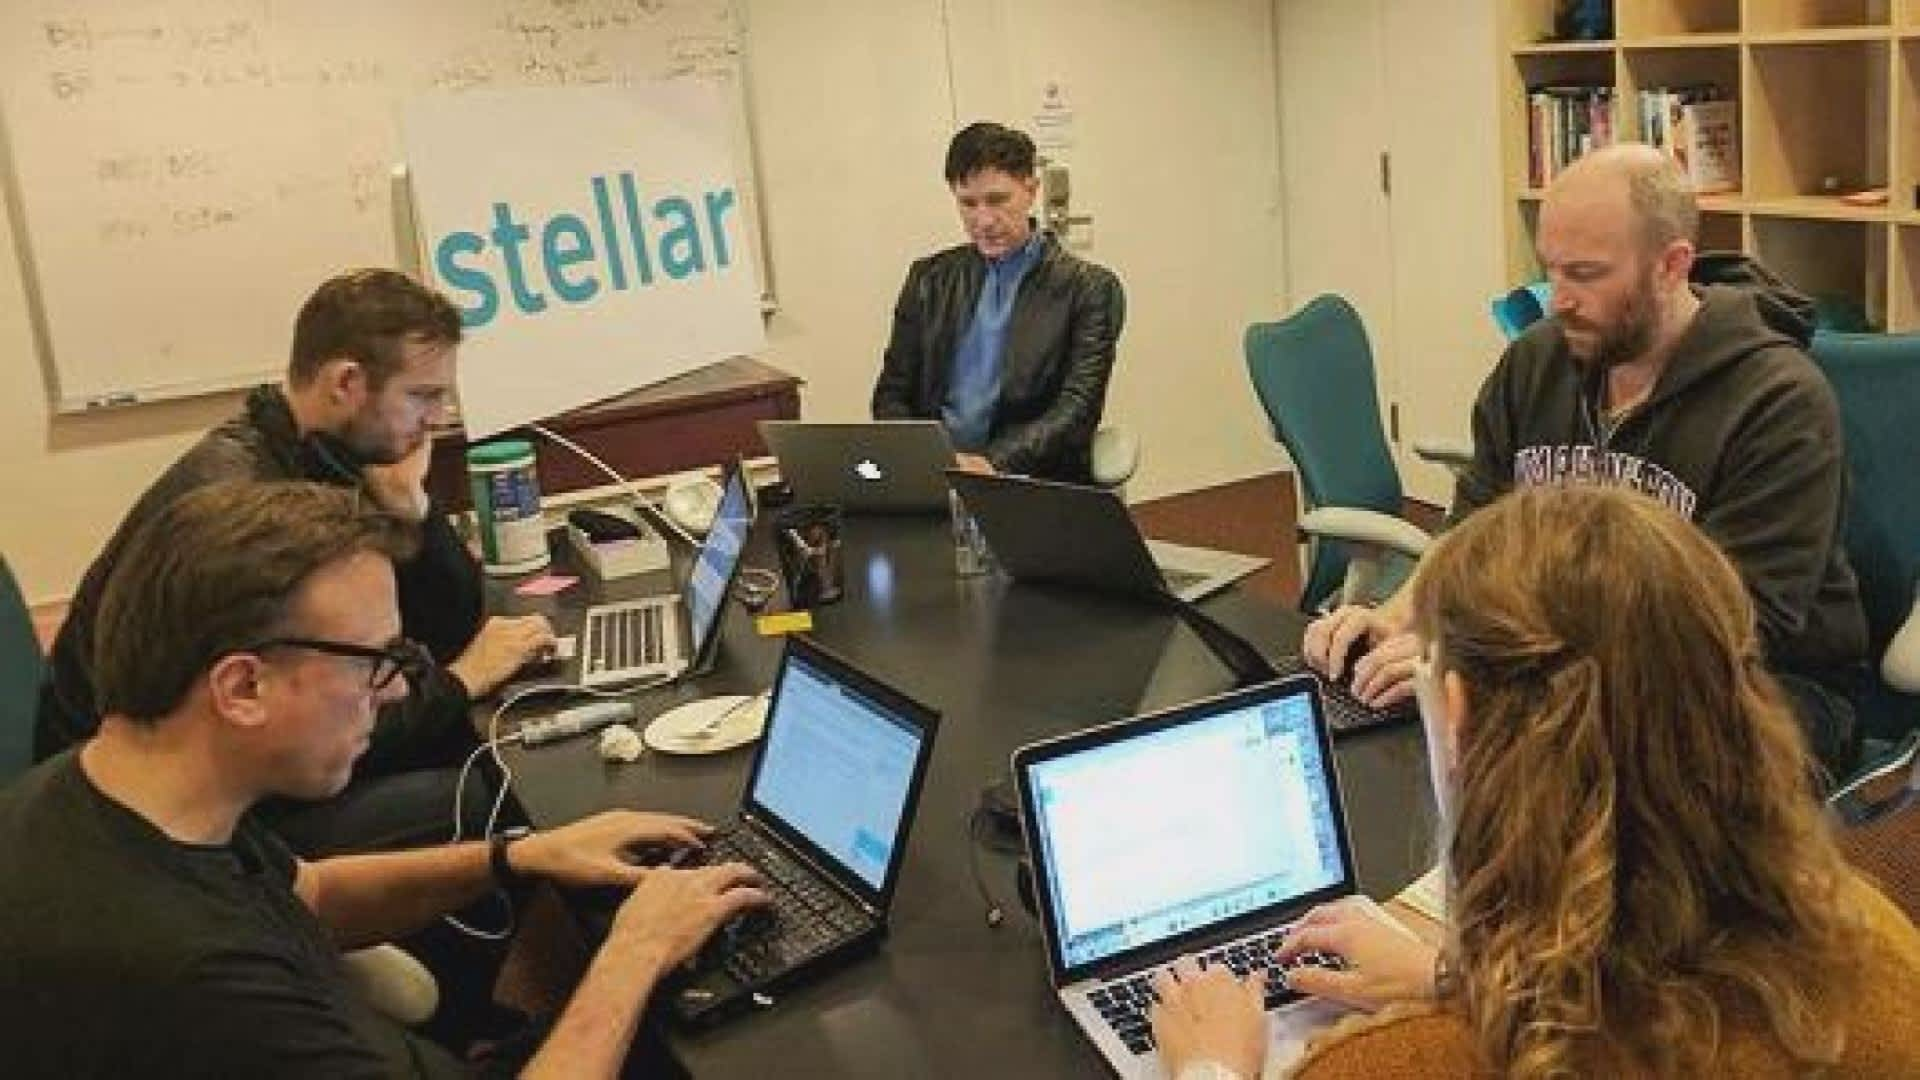 Stellar is already making headlines this year in the cryptocurrency world